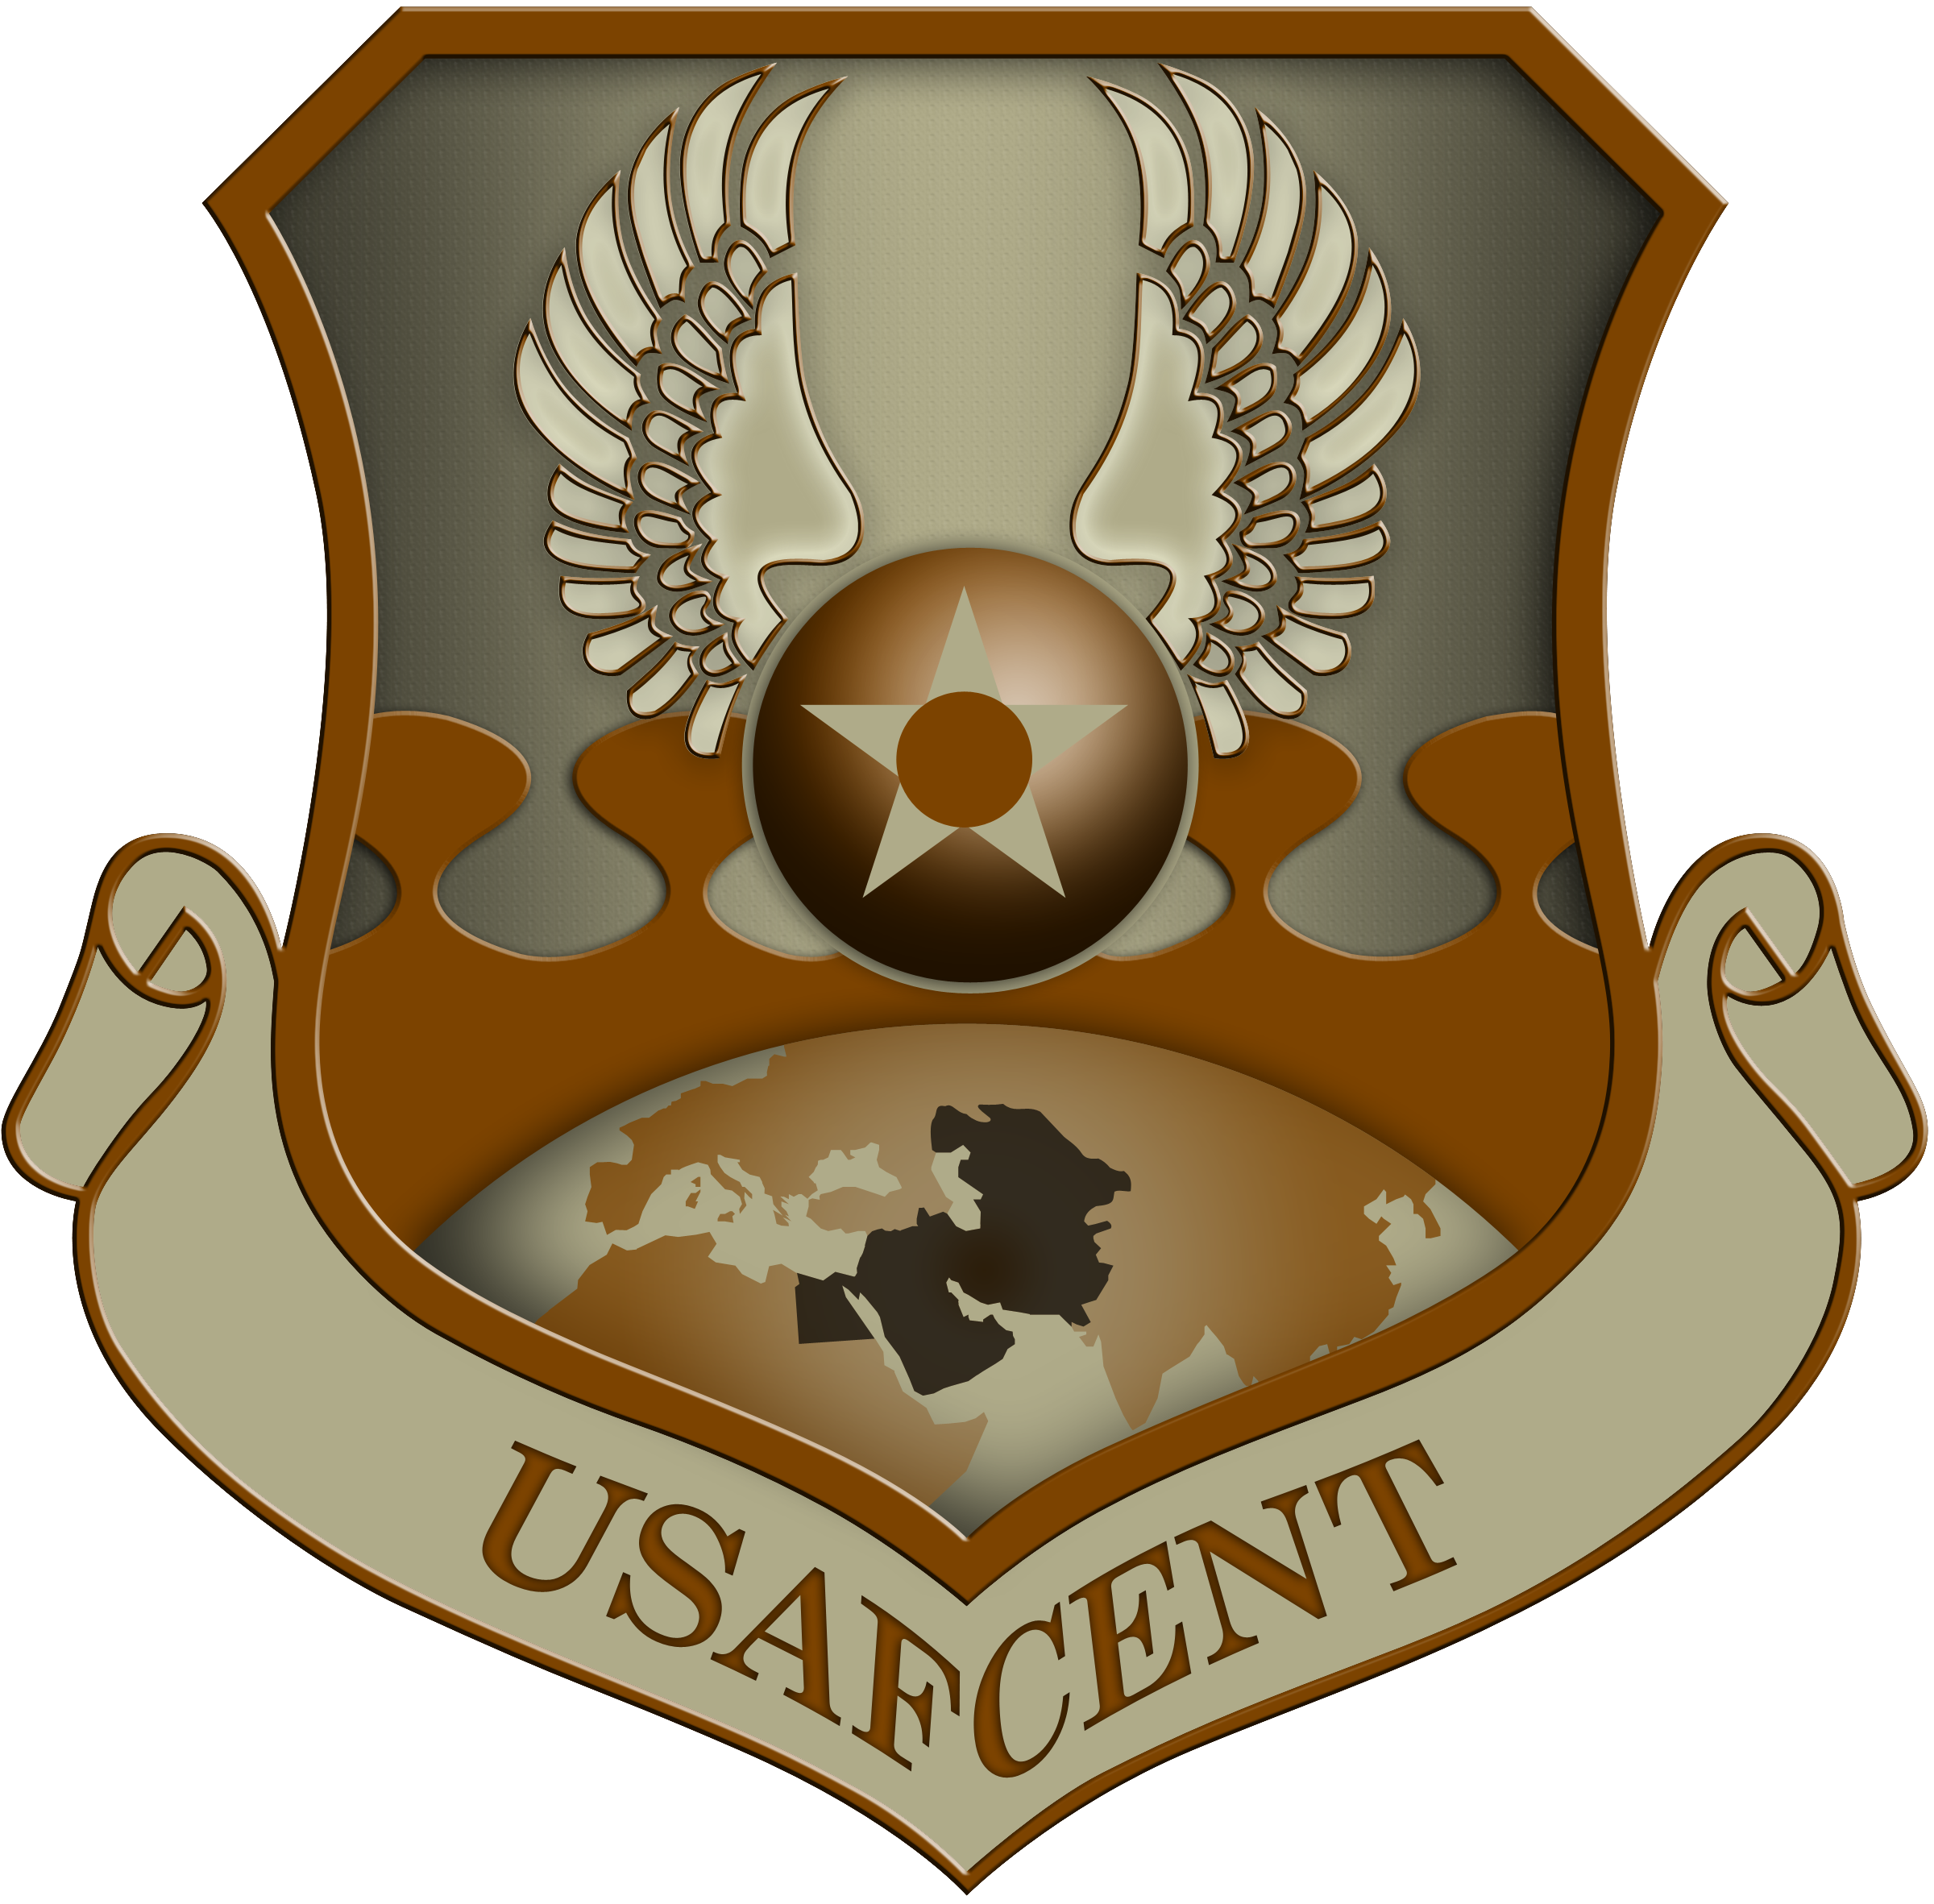 Shield USAFCENT U.S. Air Force Central Command by scrollmedia on.